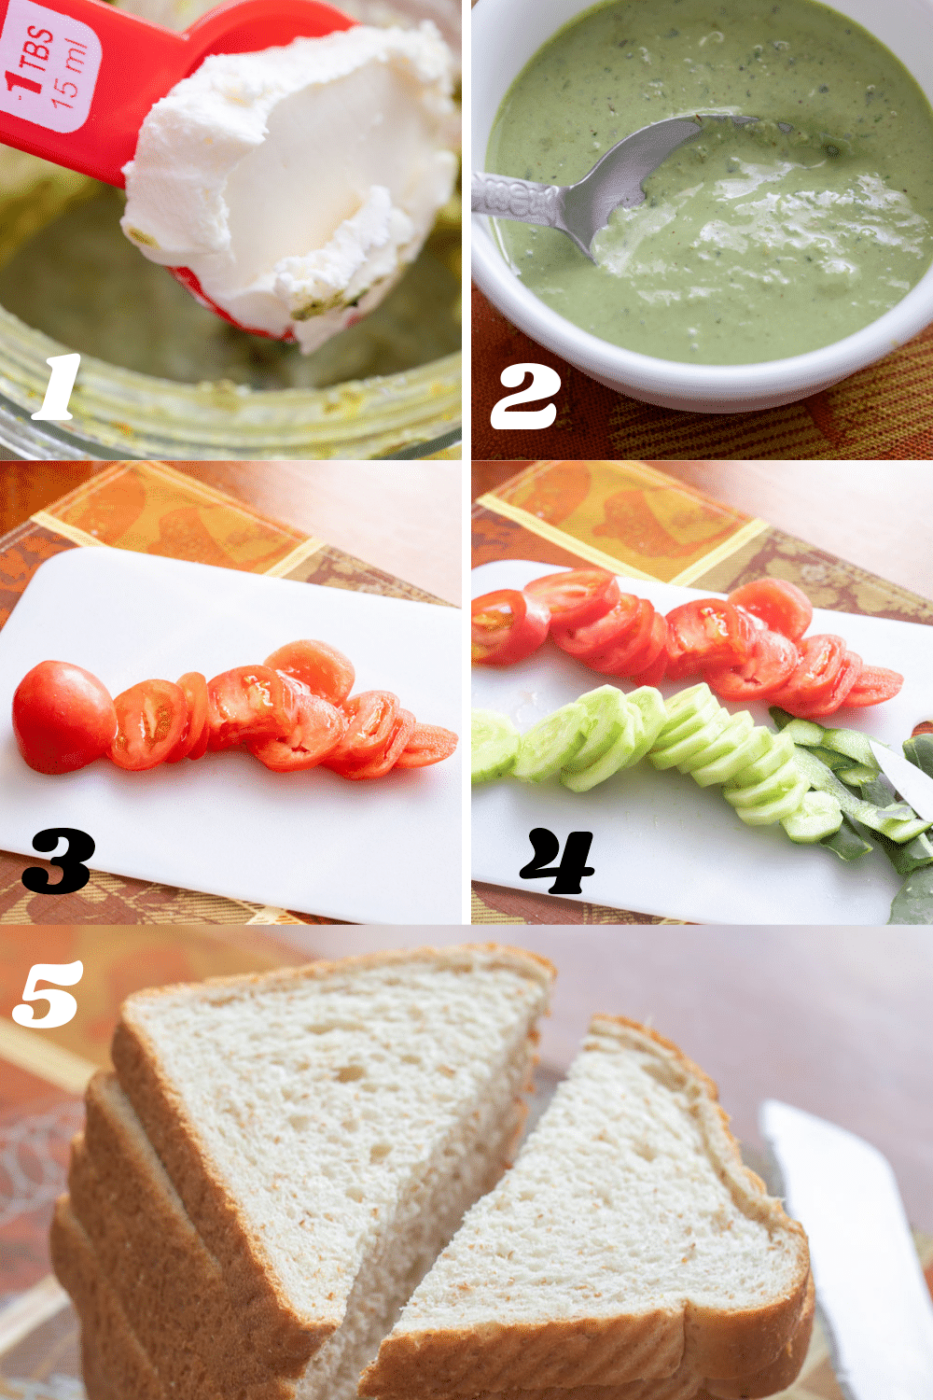 Collage of 5 images showing the preparation steps on needed for making it.